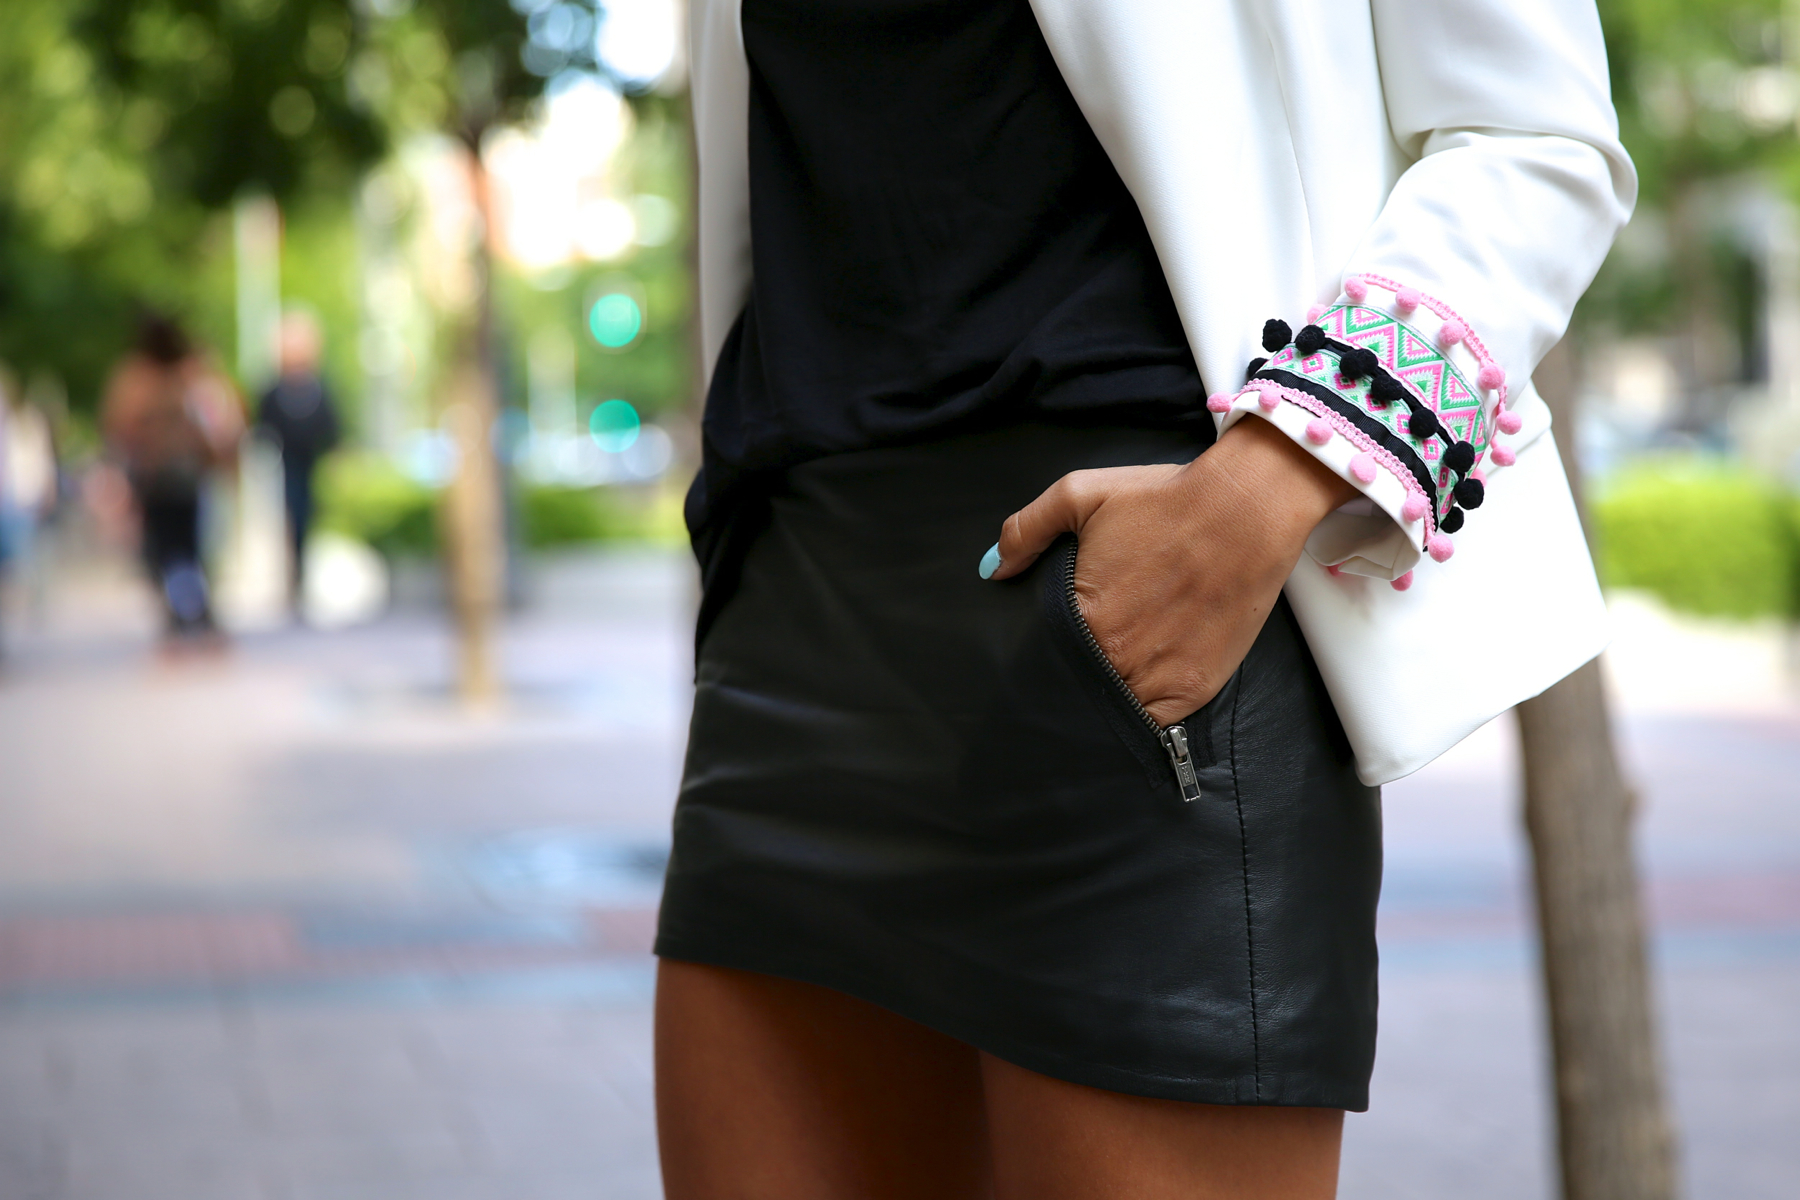 trendy_taste-look-outfit-street_style-ootd-blog-blogger-fashion_spain-moda_españa-starbucks-frapuccino-saint_laurent-falda_cuero-leather_skirt-chic_place-stella_rittwagen-bolso_plata-silver_clutch-4